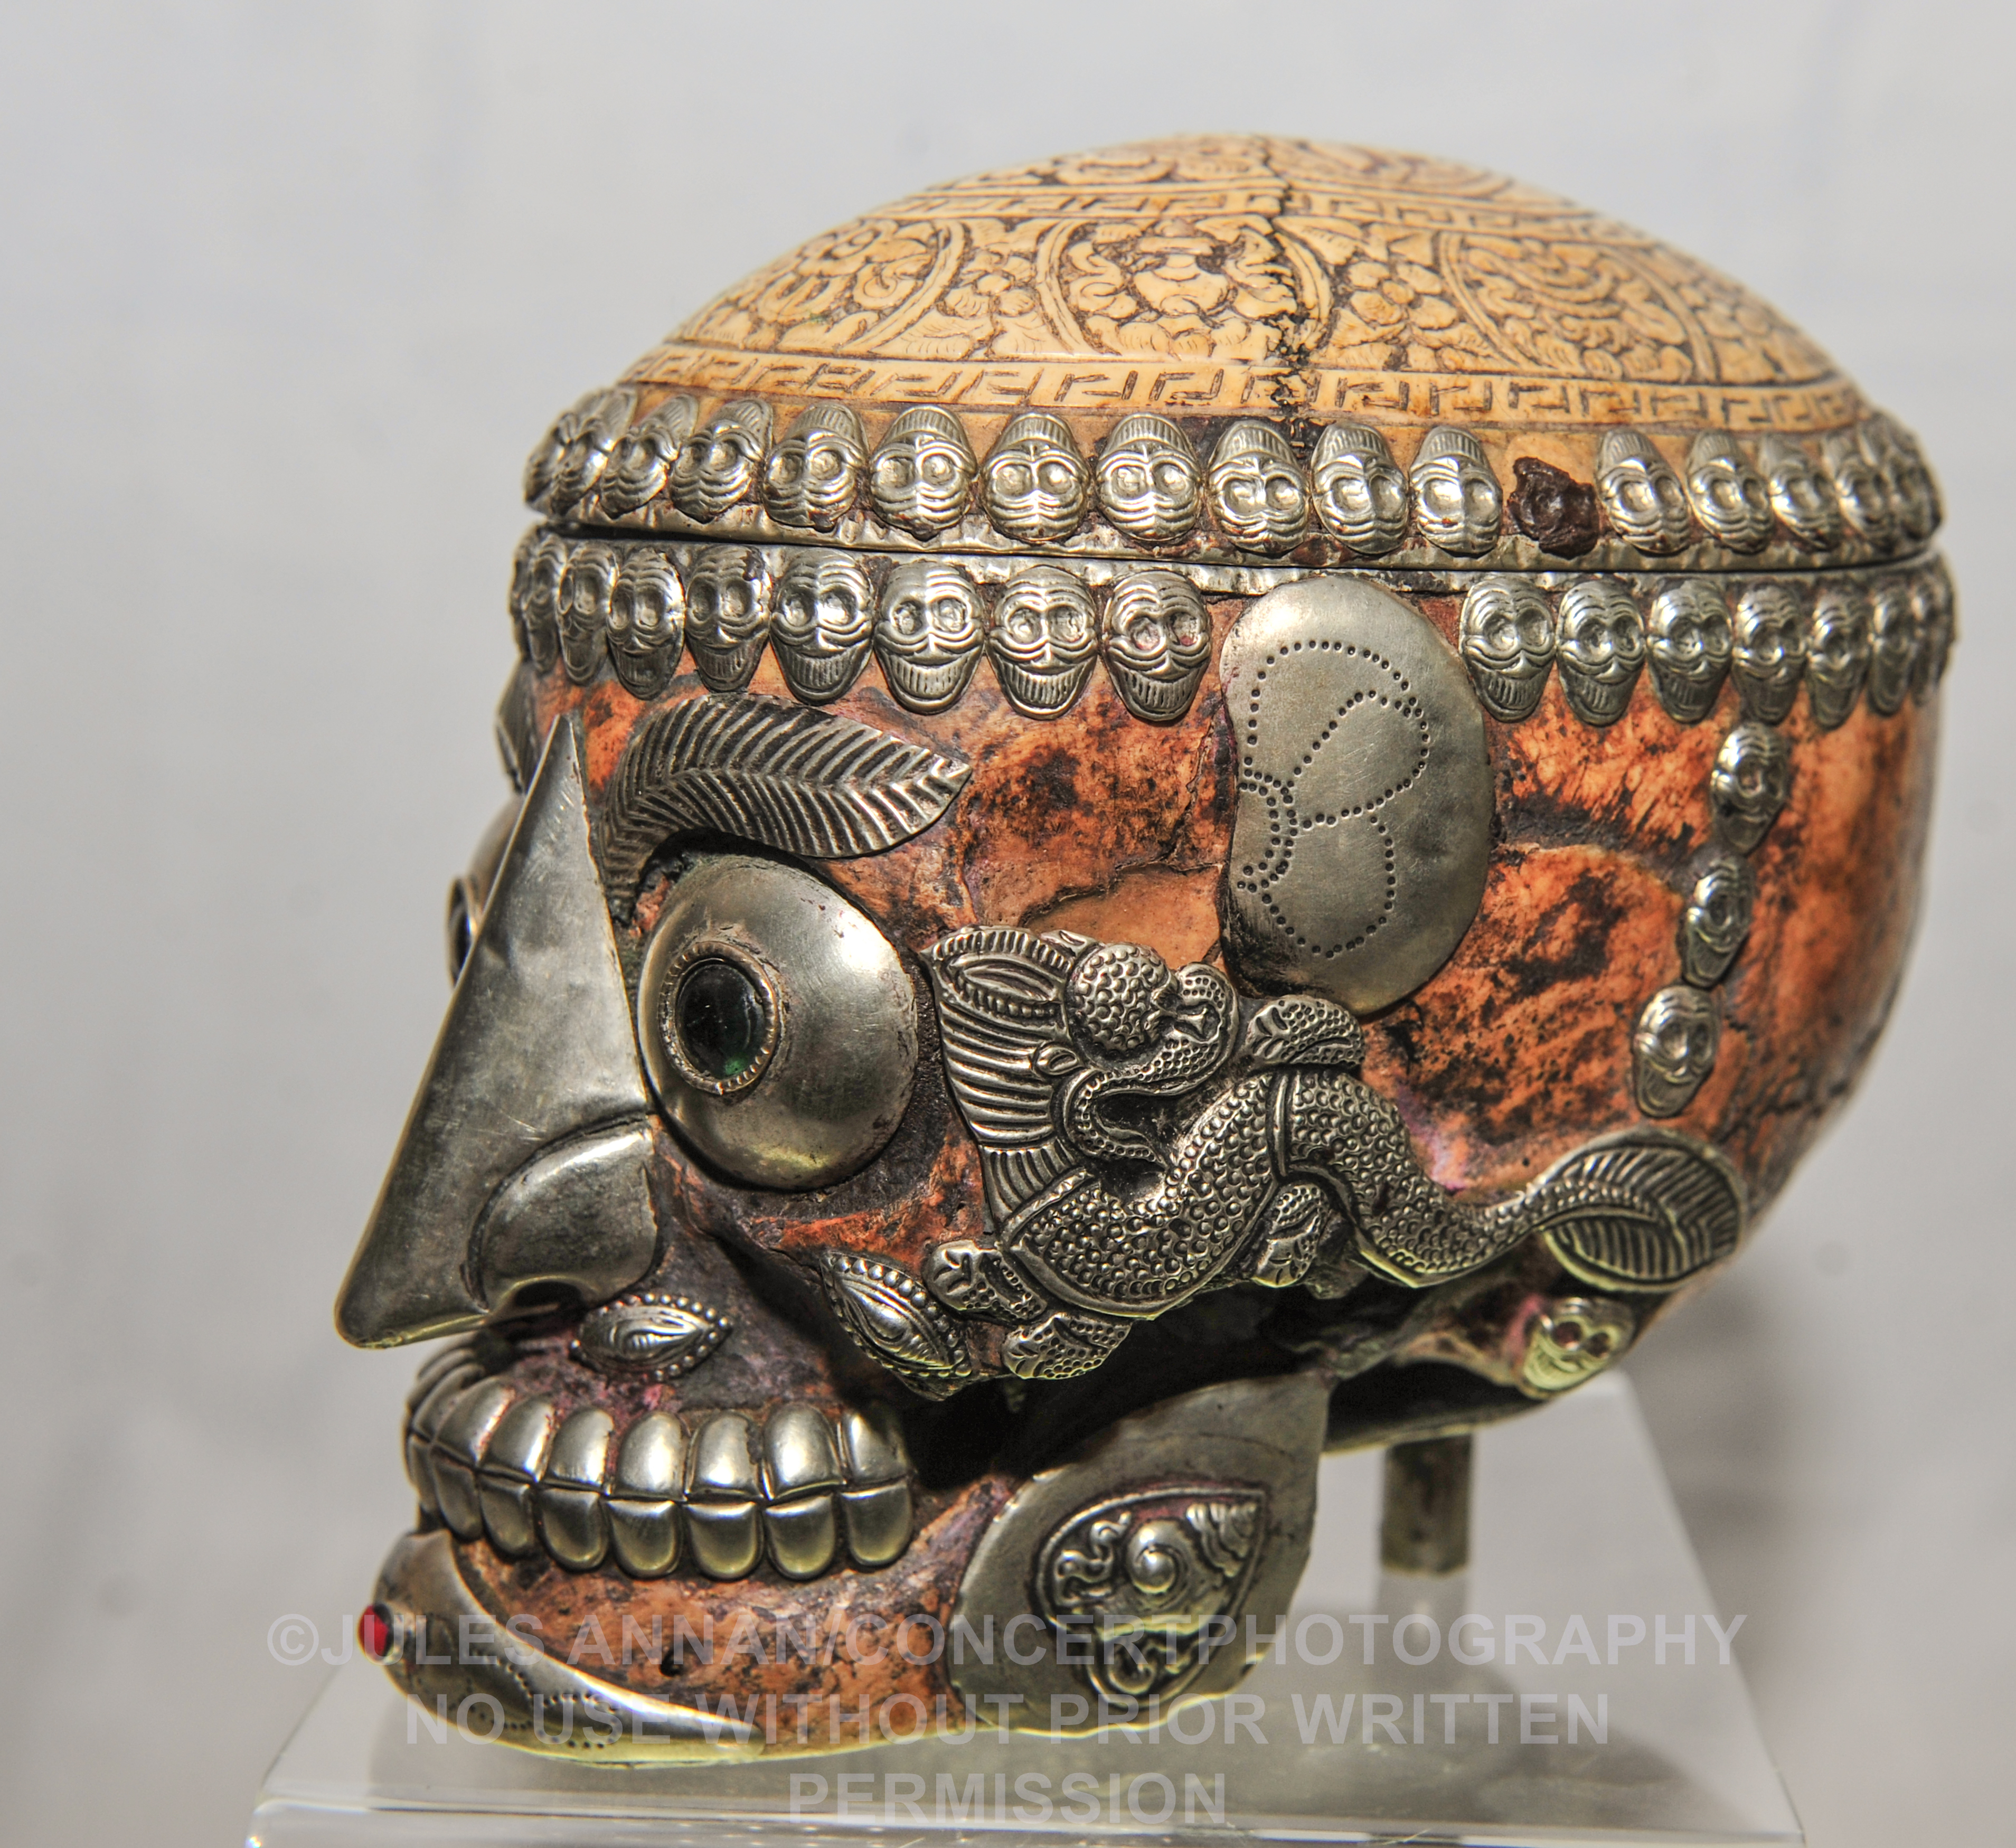 Very rare Tibetan Kapala human skull, used as a ceremonial drinking vessel for Tibetan ritual purposes to ward off evil spirits .